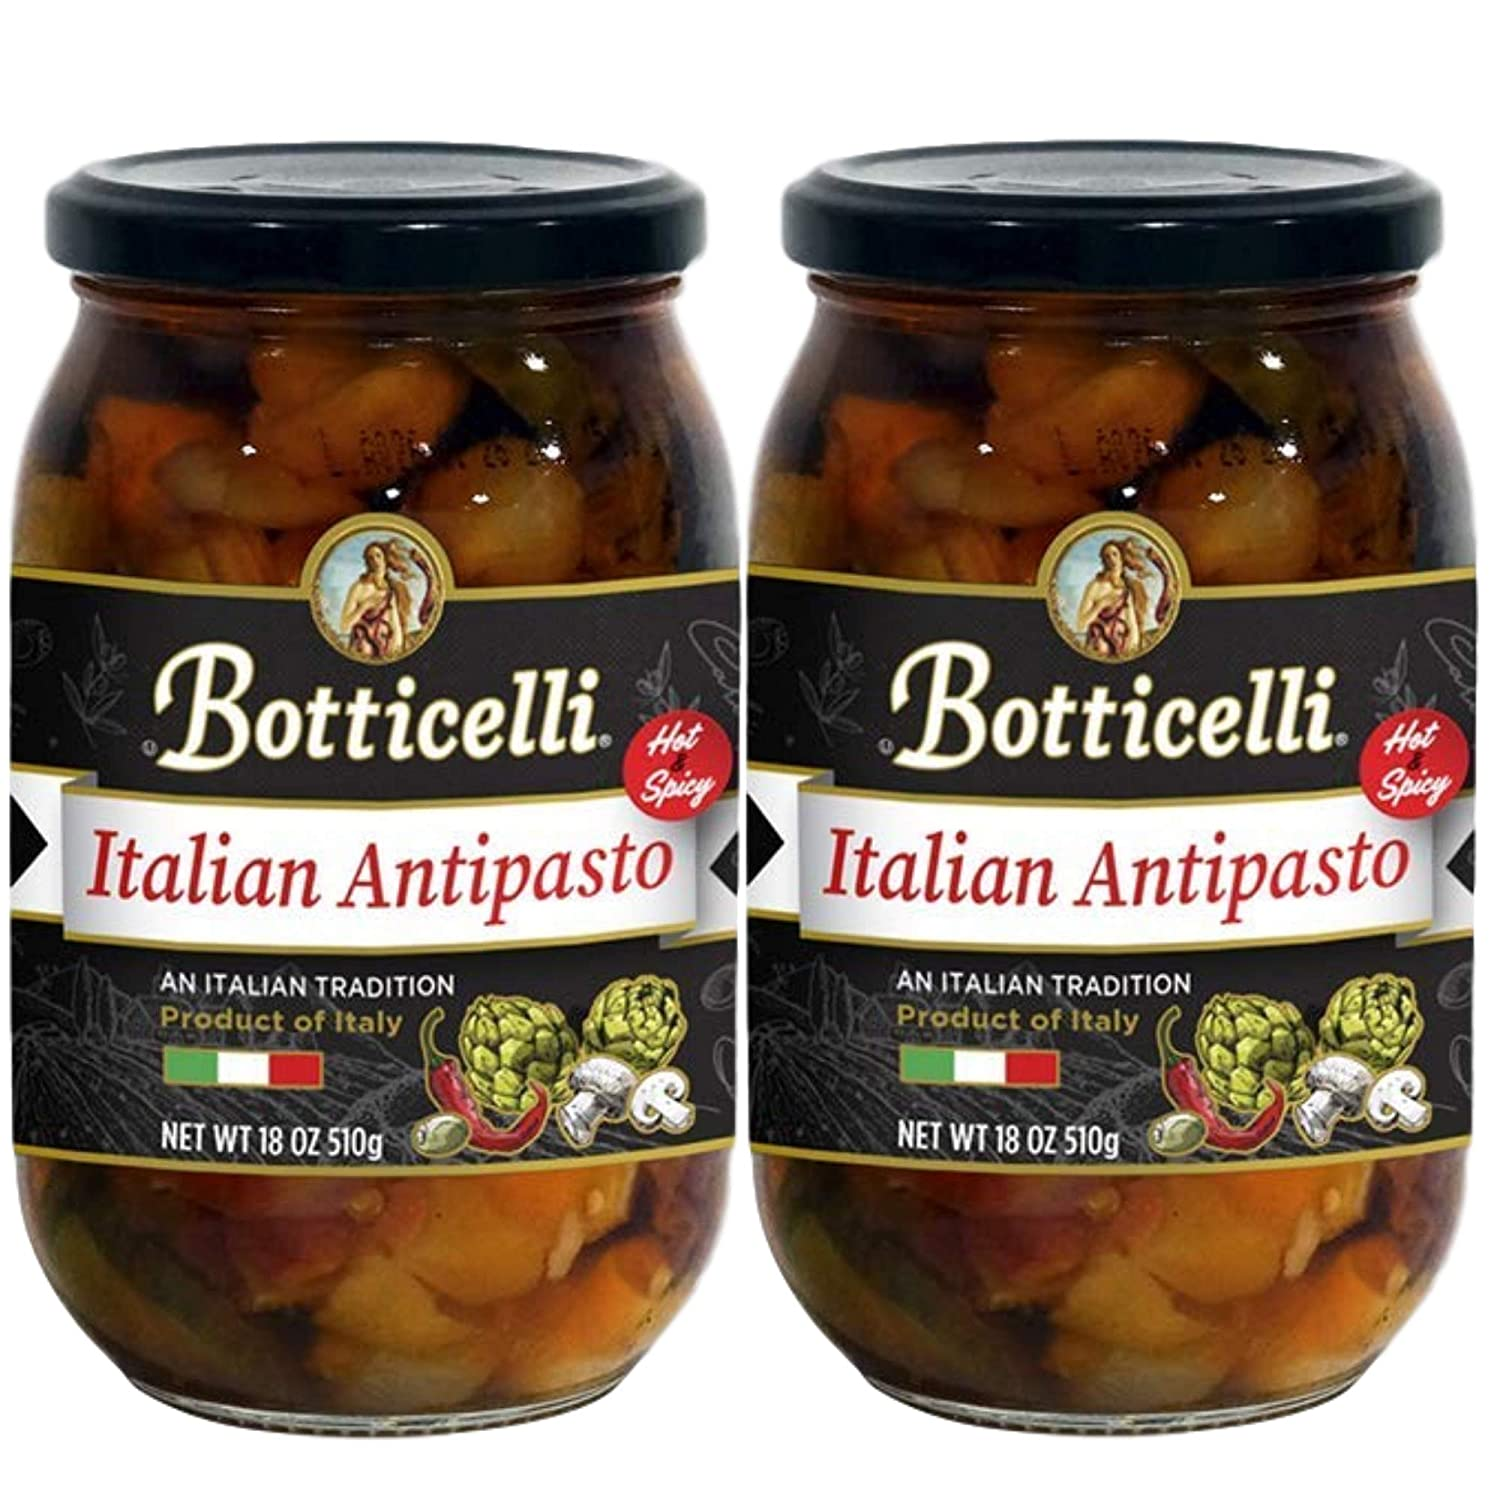 Hot Antipasto by Botticelli, 18oz Jars (Pack of 2) - Premium Spicy Italian Appetizer - Gluten-Free - Olives, Artichokes, Mushrooms, Red Hot Peppers, and Olive Oil